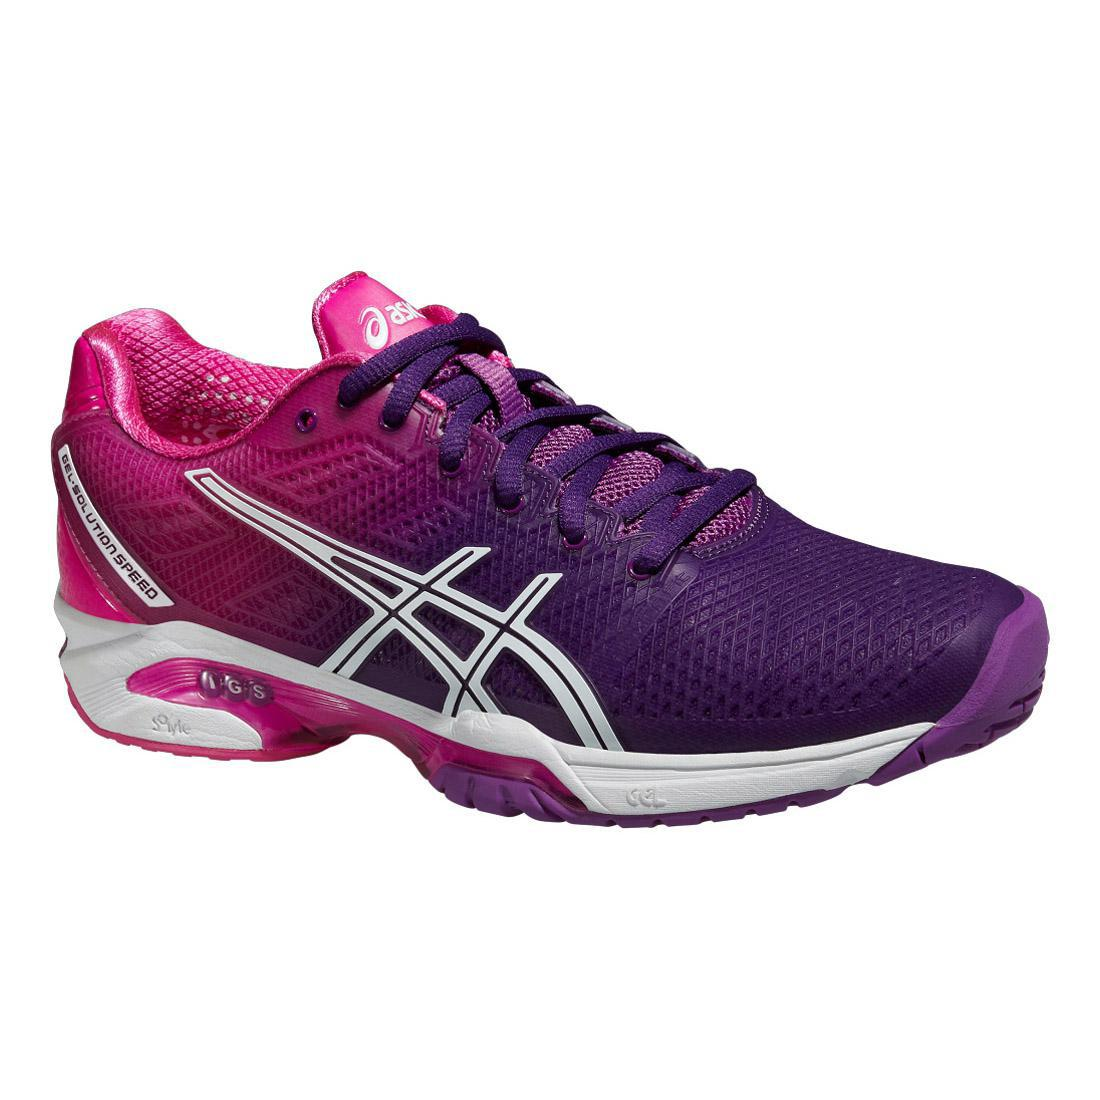 Asics Shoes Where To Buy